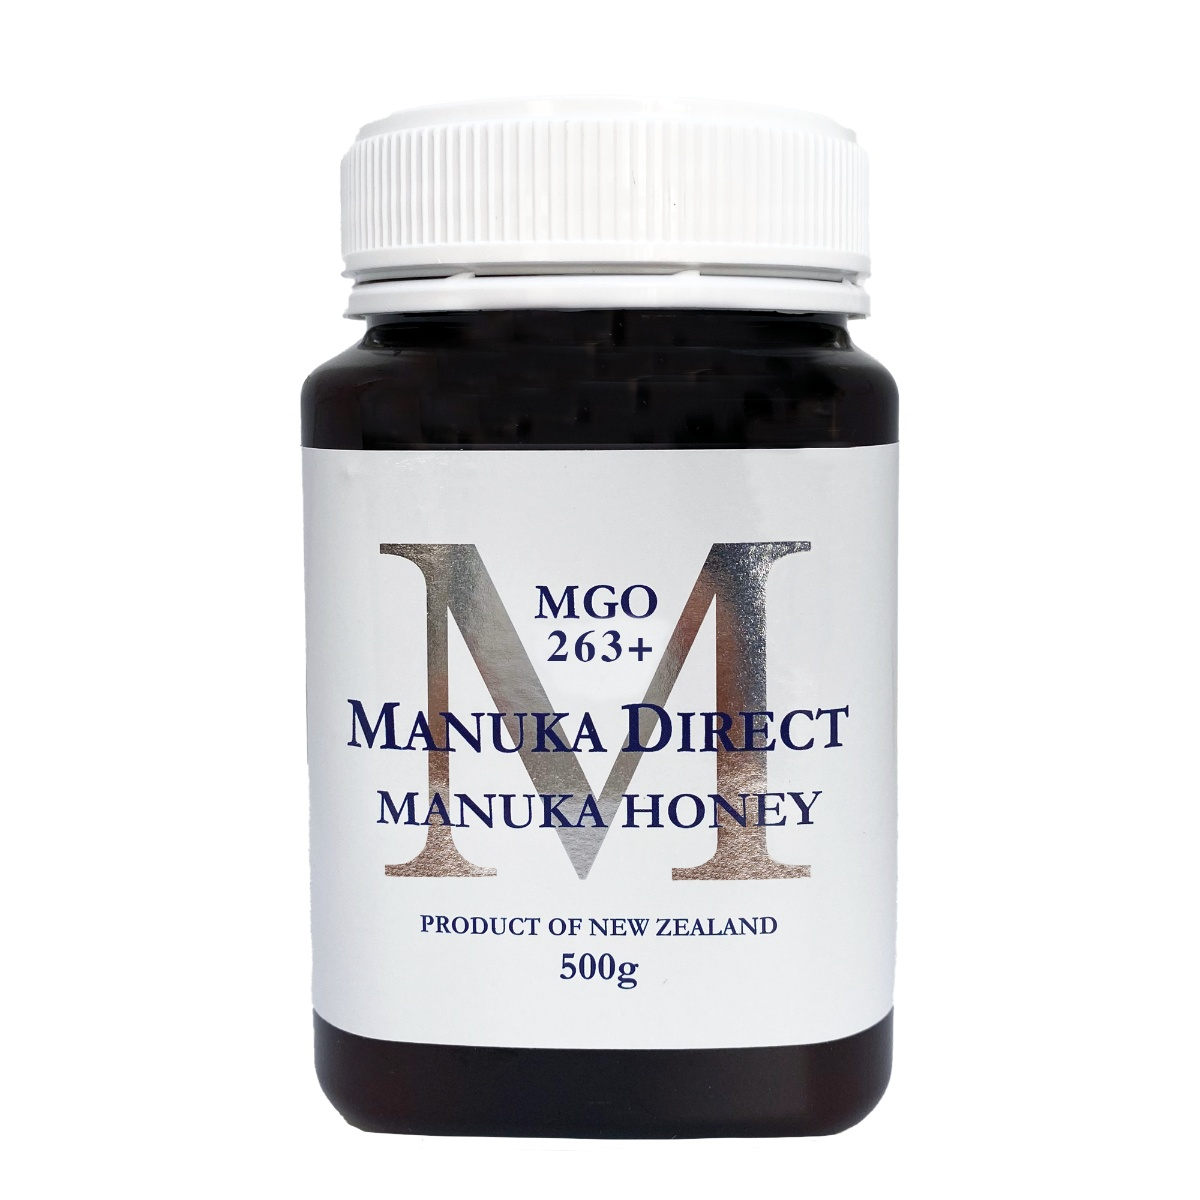 V3 Metalic M Cut Out - Manuka Direct MGO 263+ 500g